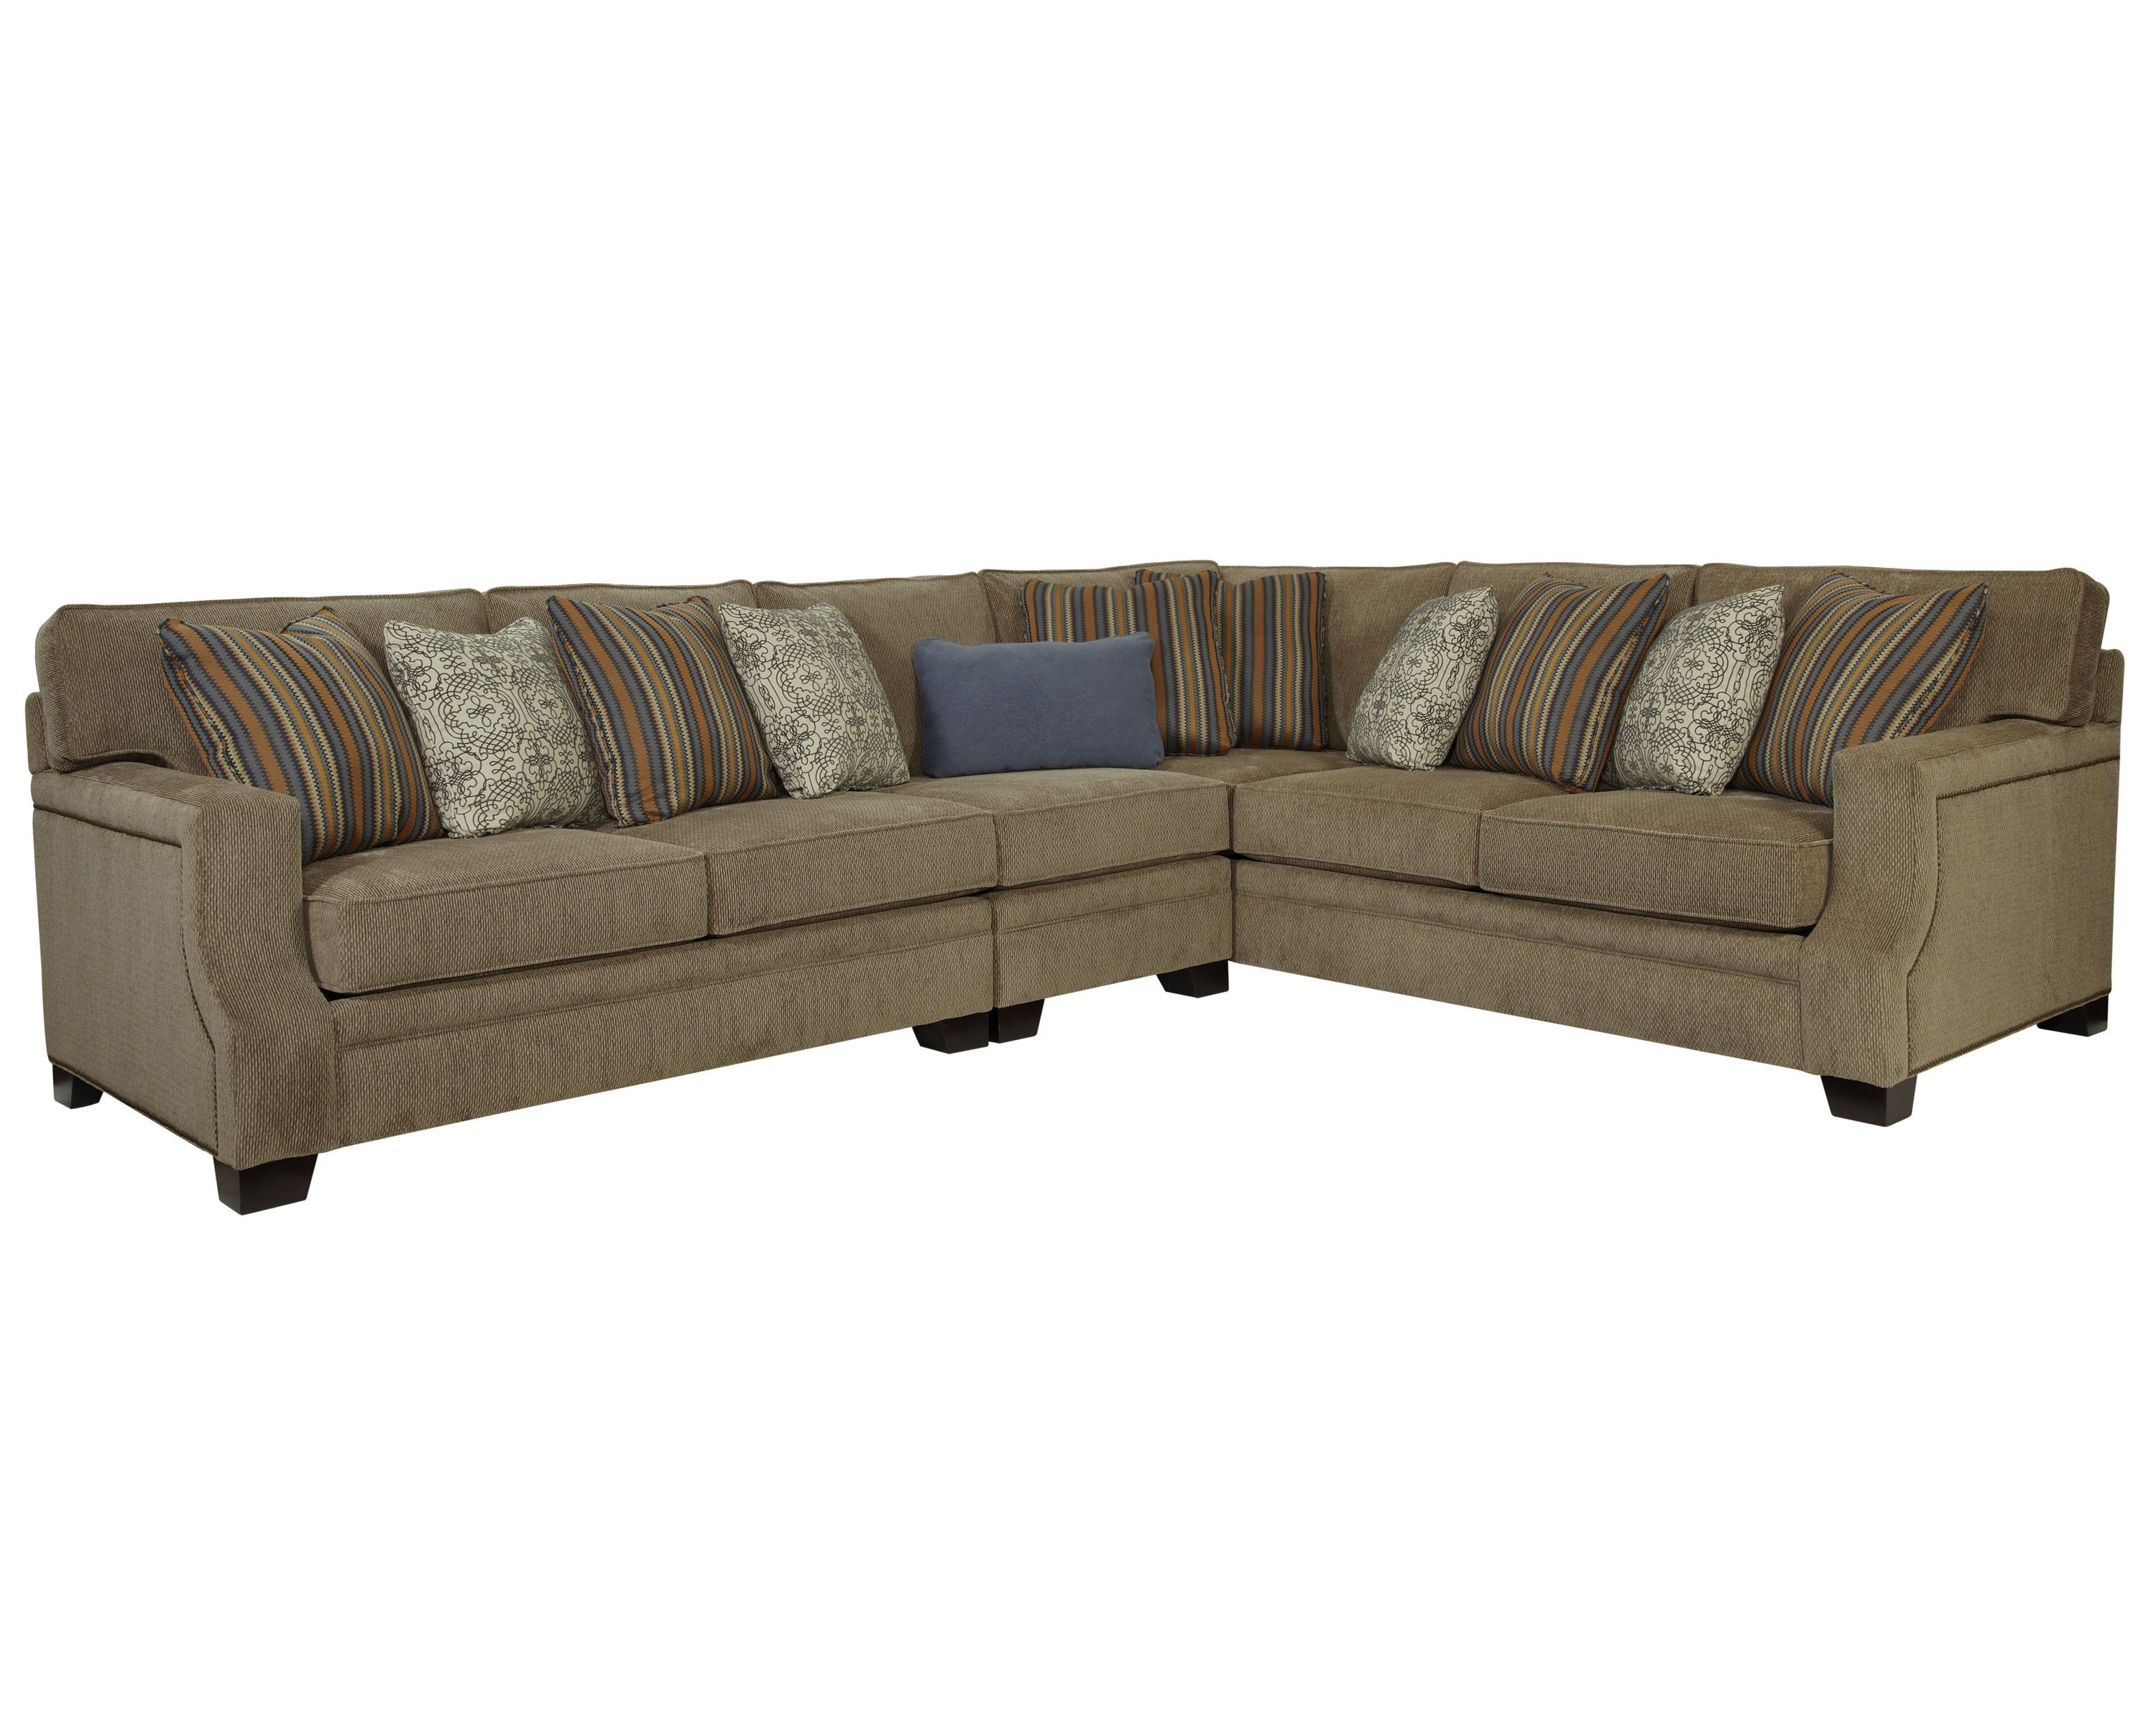 Broyhill Living Room Sectional G59318